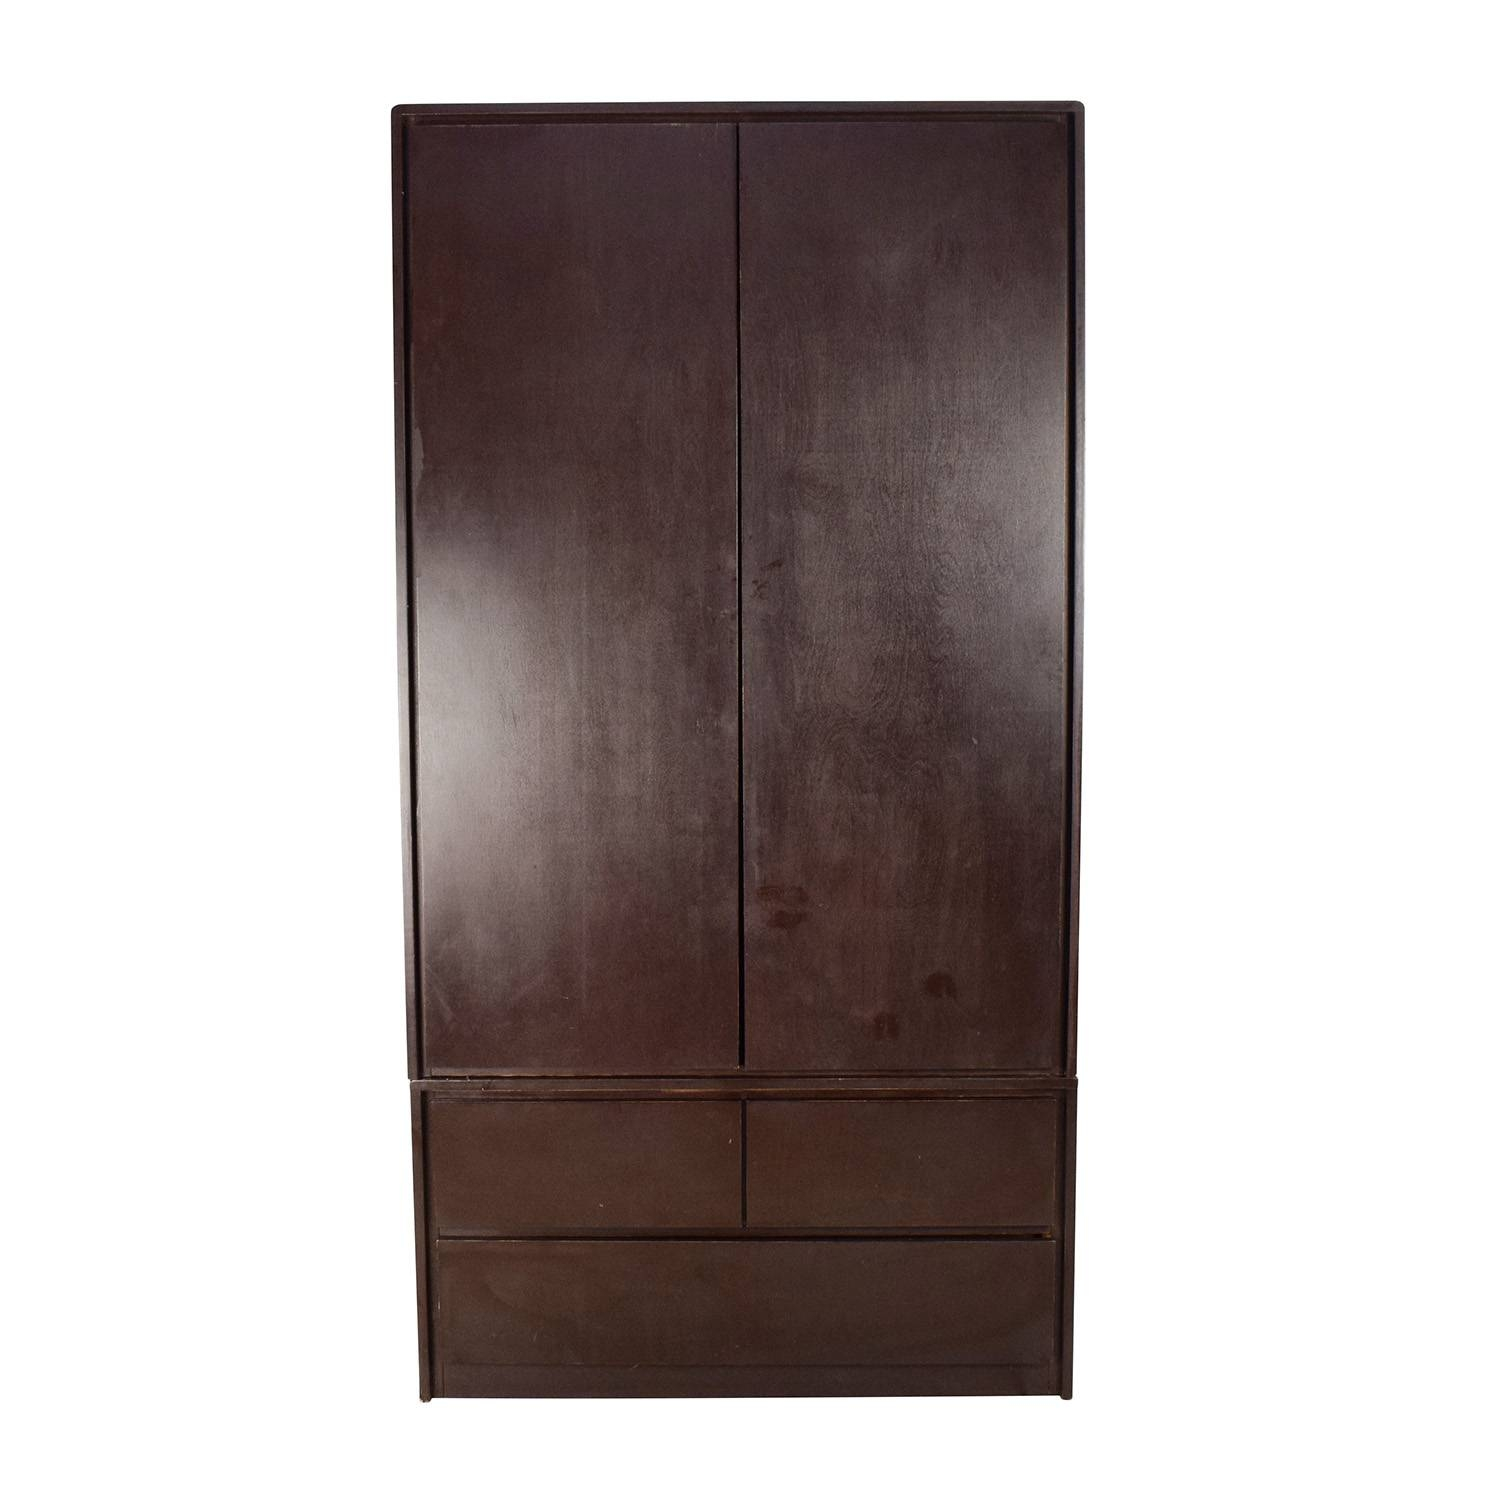 Wardrobes & Armoires: Used Wardrobes & Armoires For Sale within Solid Dark Wood Wardrobes (Image 28 of 30)